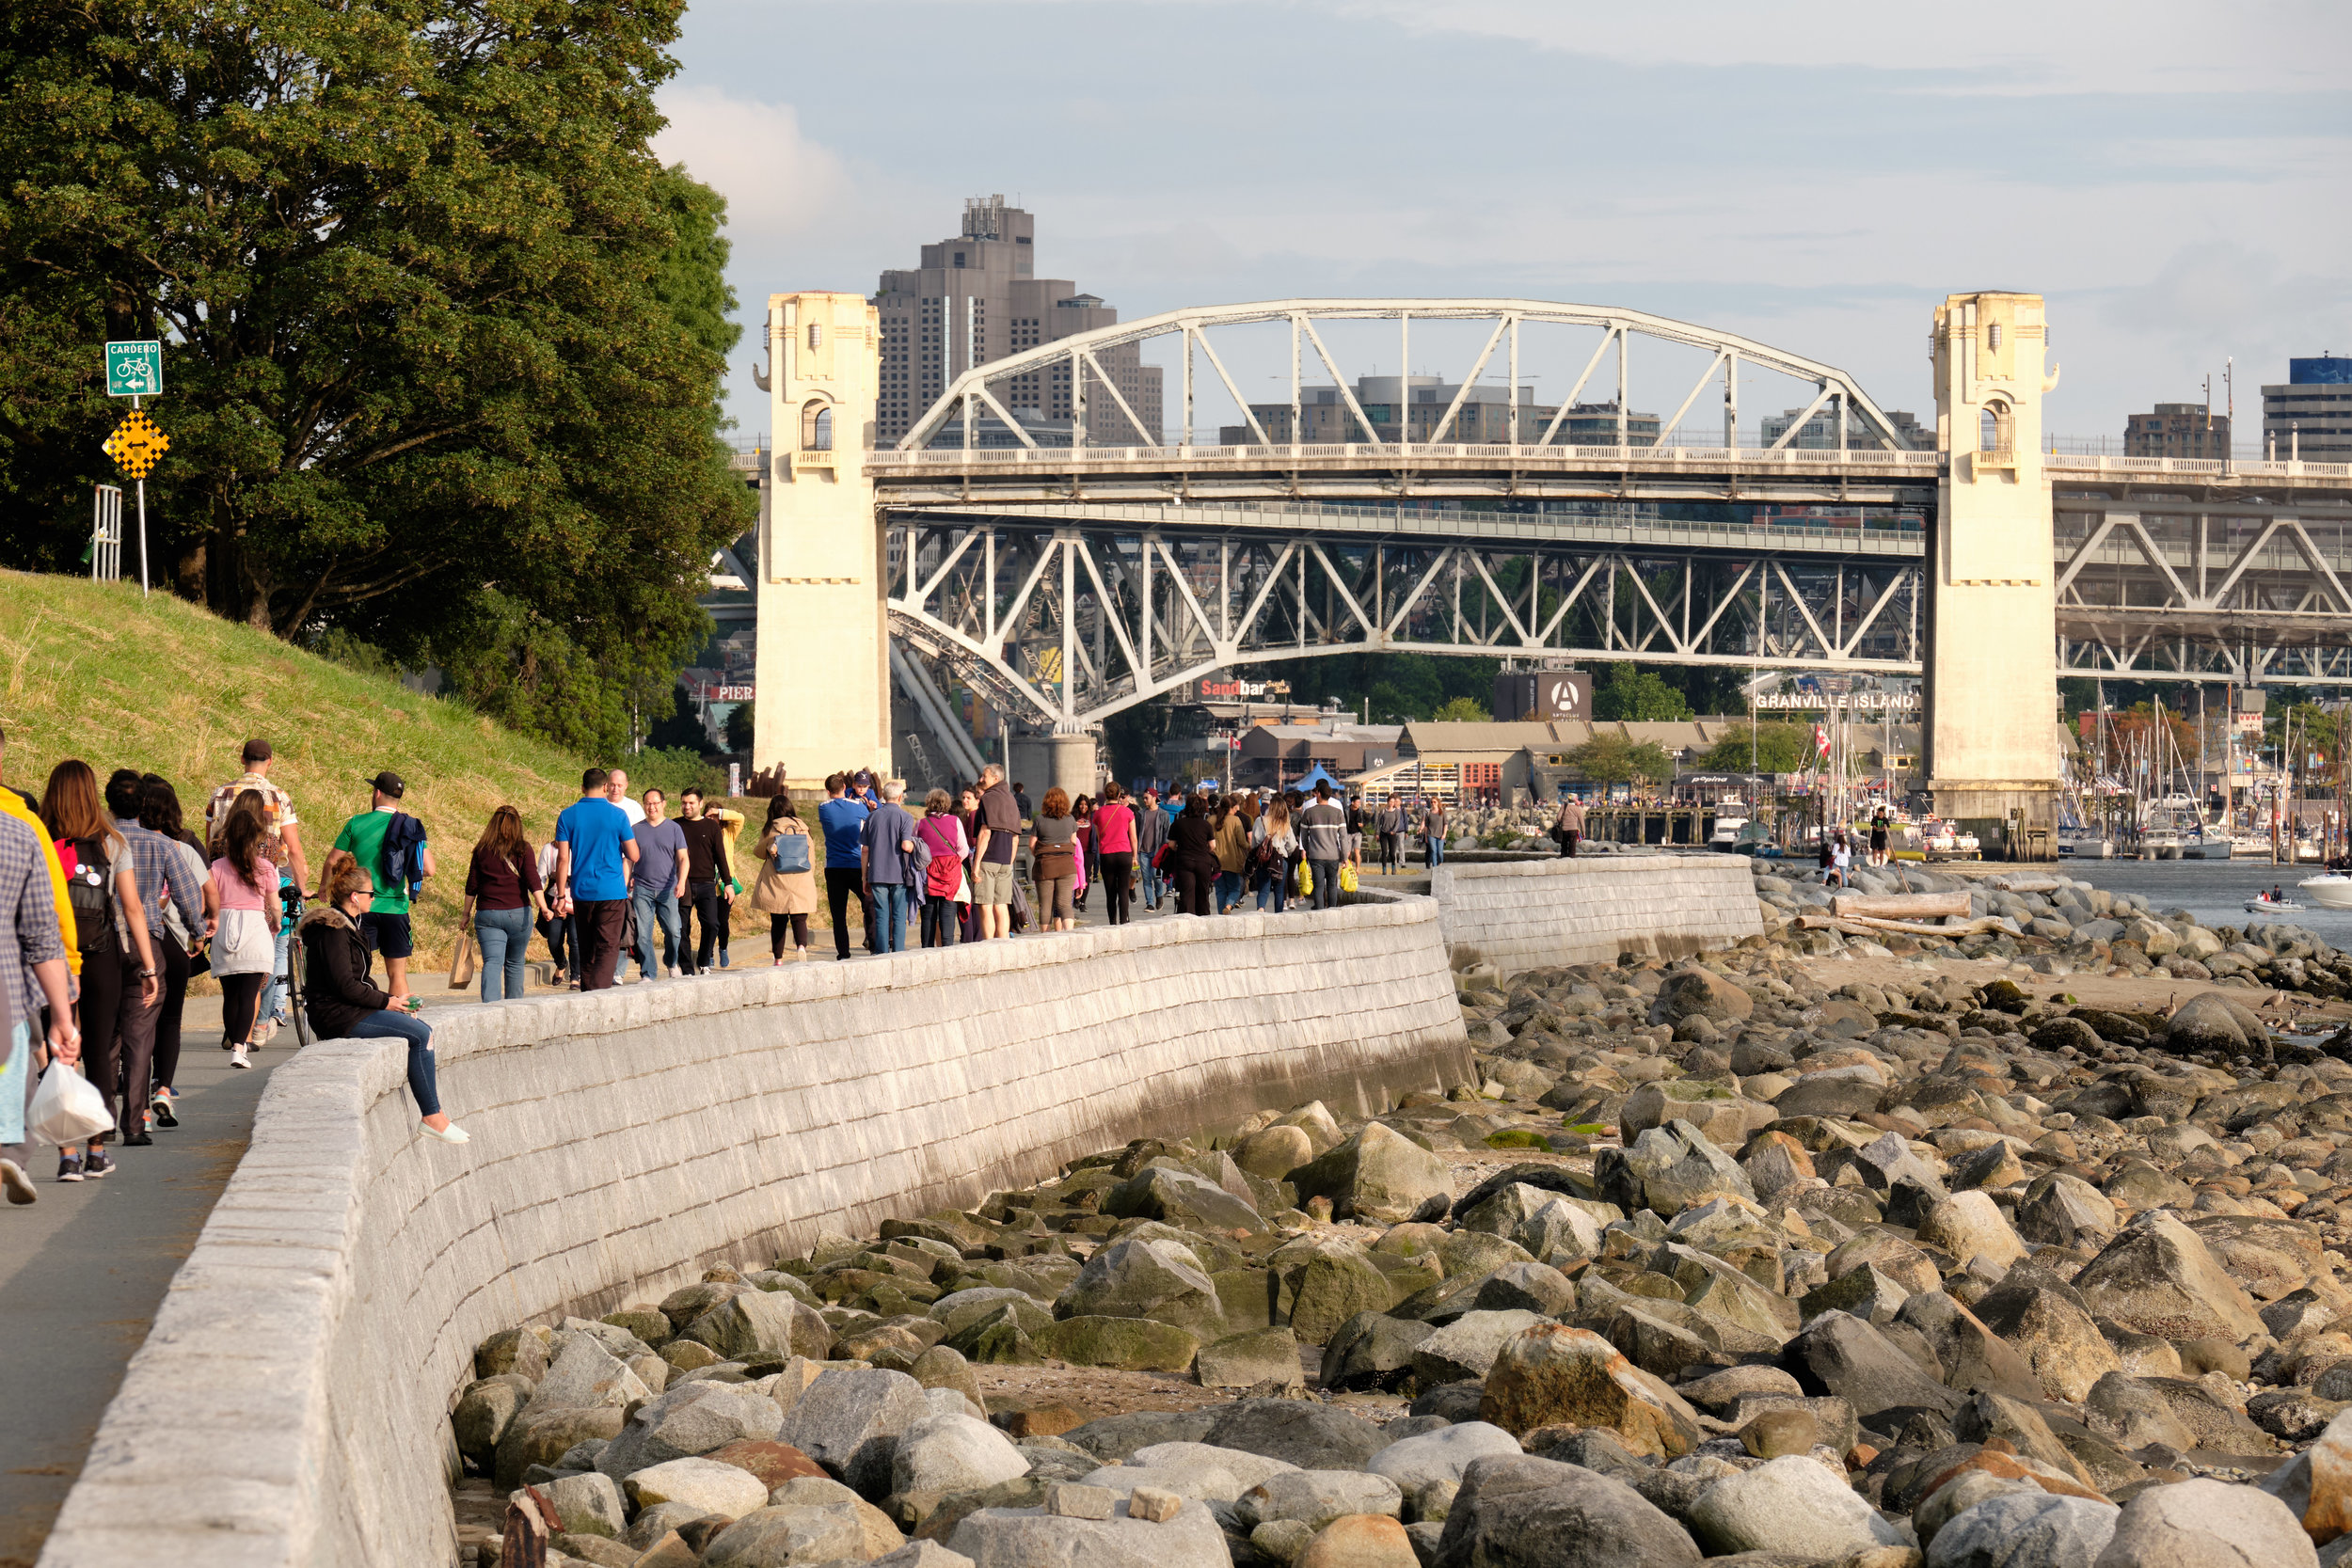 Stanley Park Seawall at English Bay and Burrard Street Bridge in Vancouver